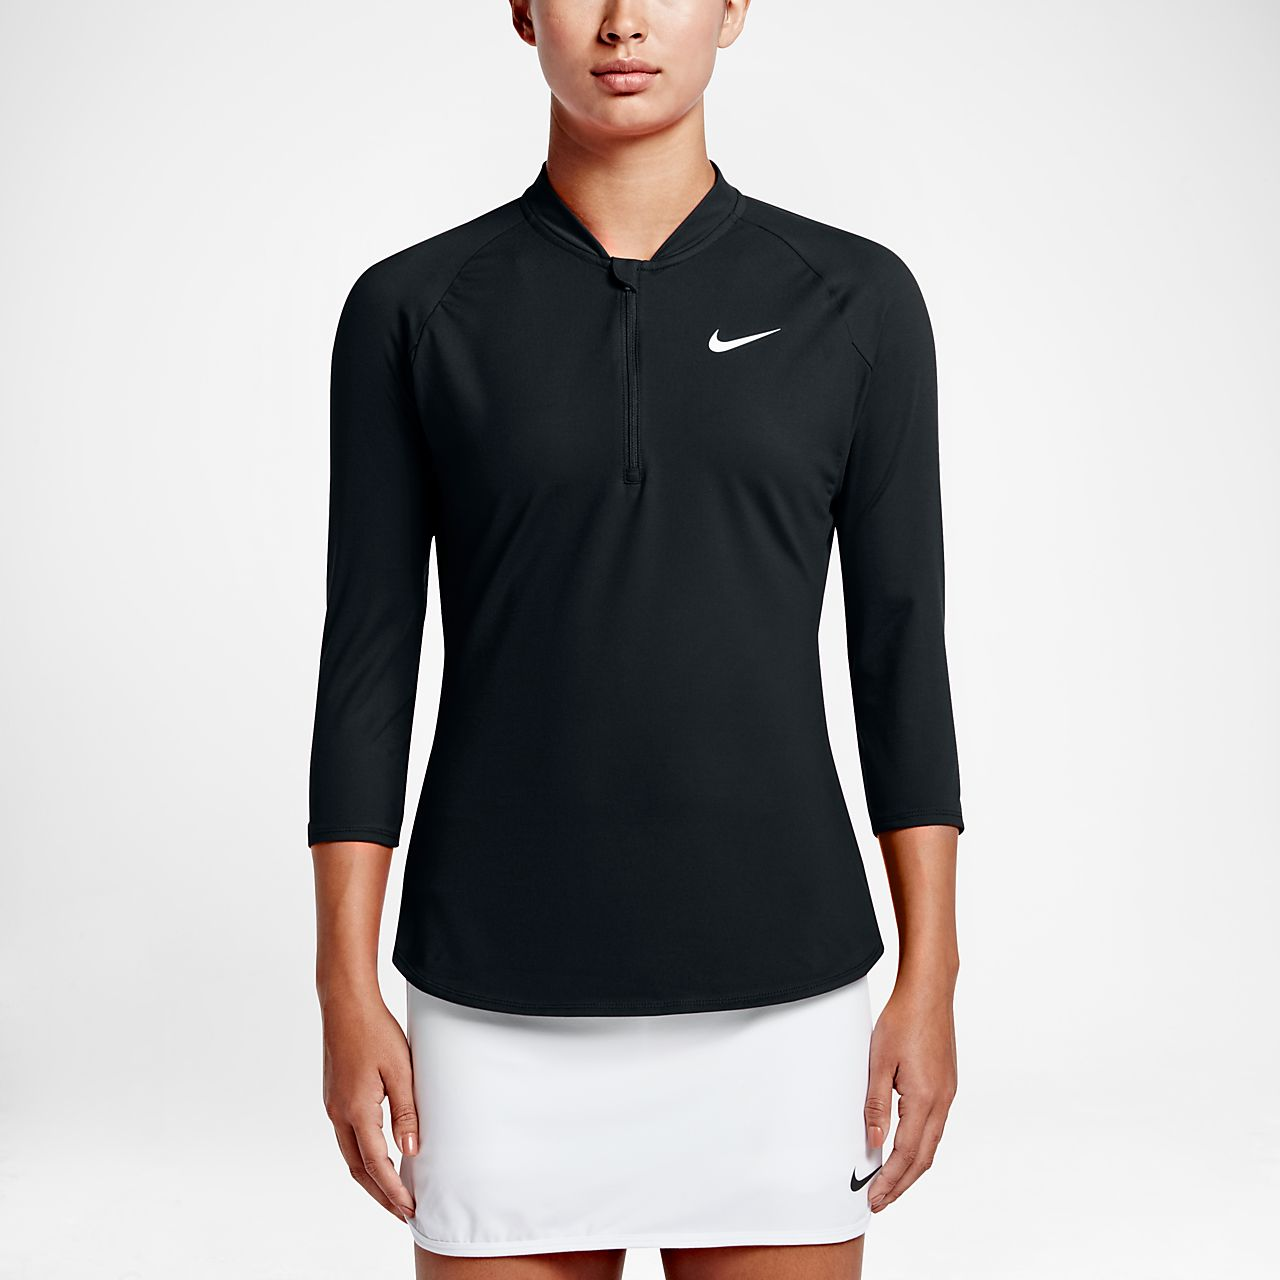 ... NikeCourt Dry Pure Women's 3/4 Sleeve Half-Zip Tennis Top